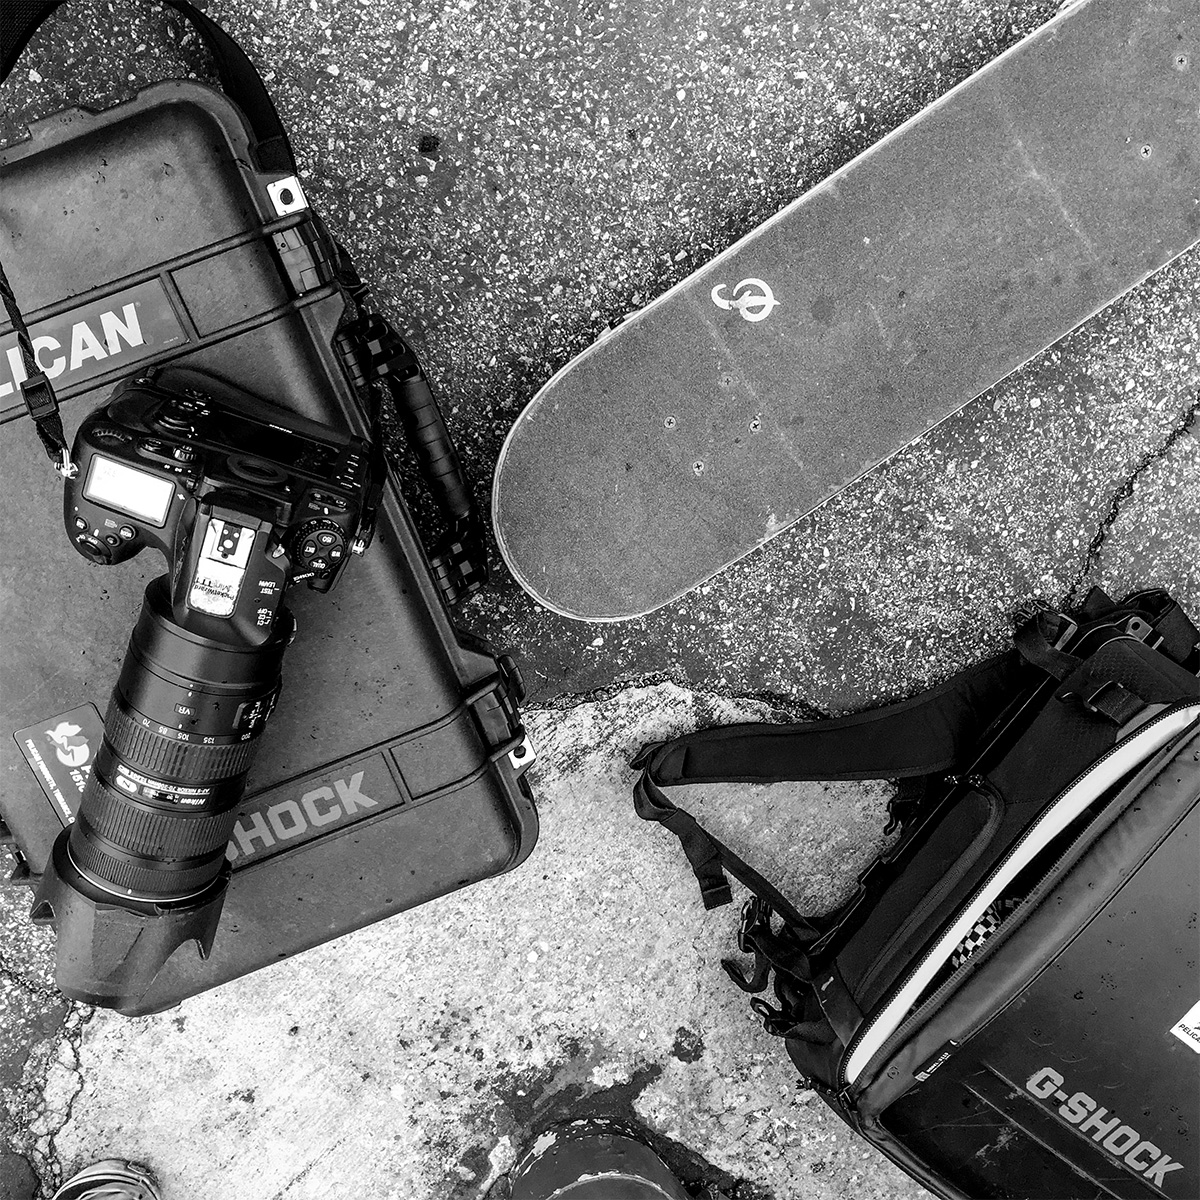 Pelican Products Pablo Vaz pro skating camera cases